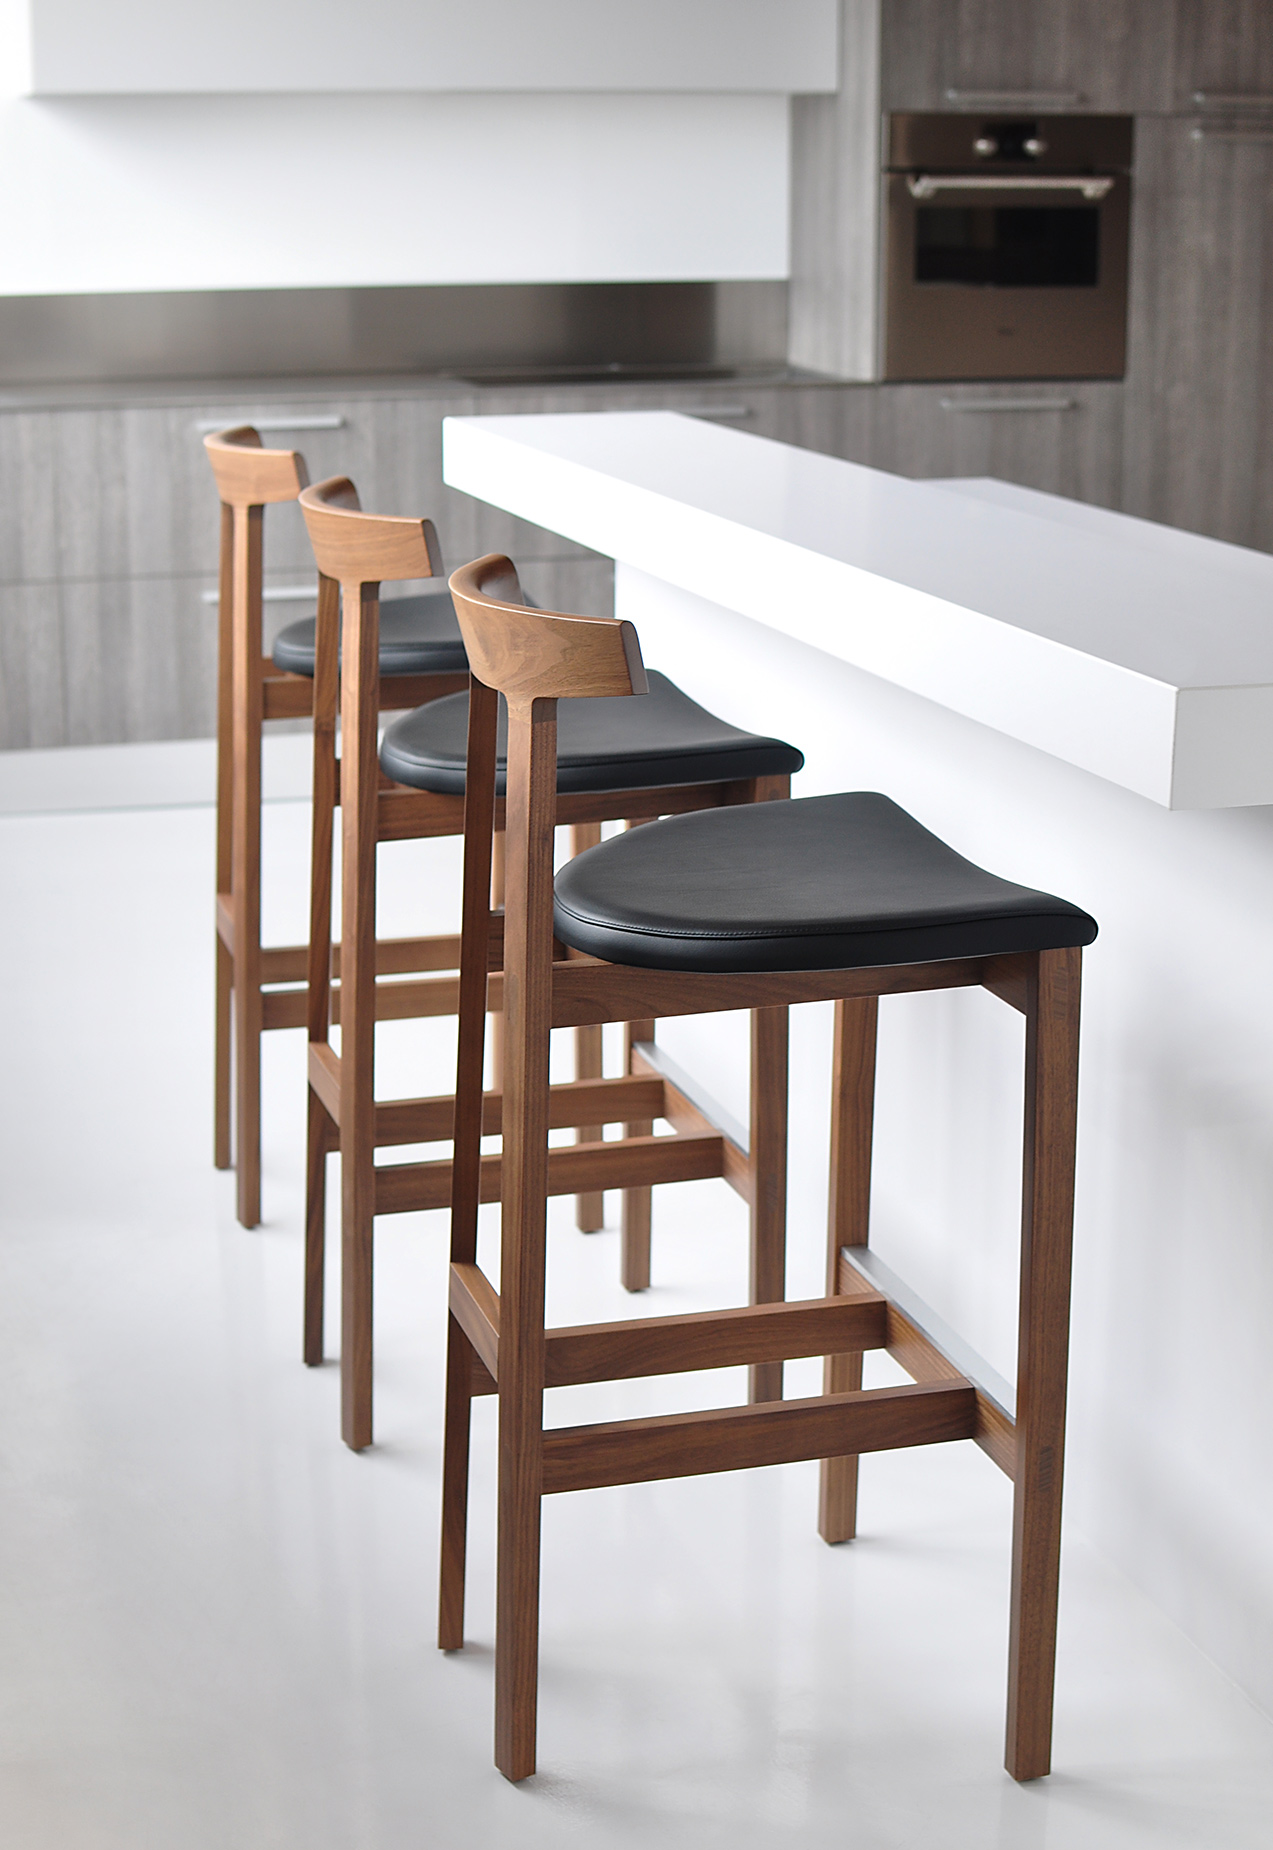 Torii Stool in walnut, black leather